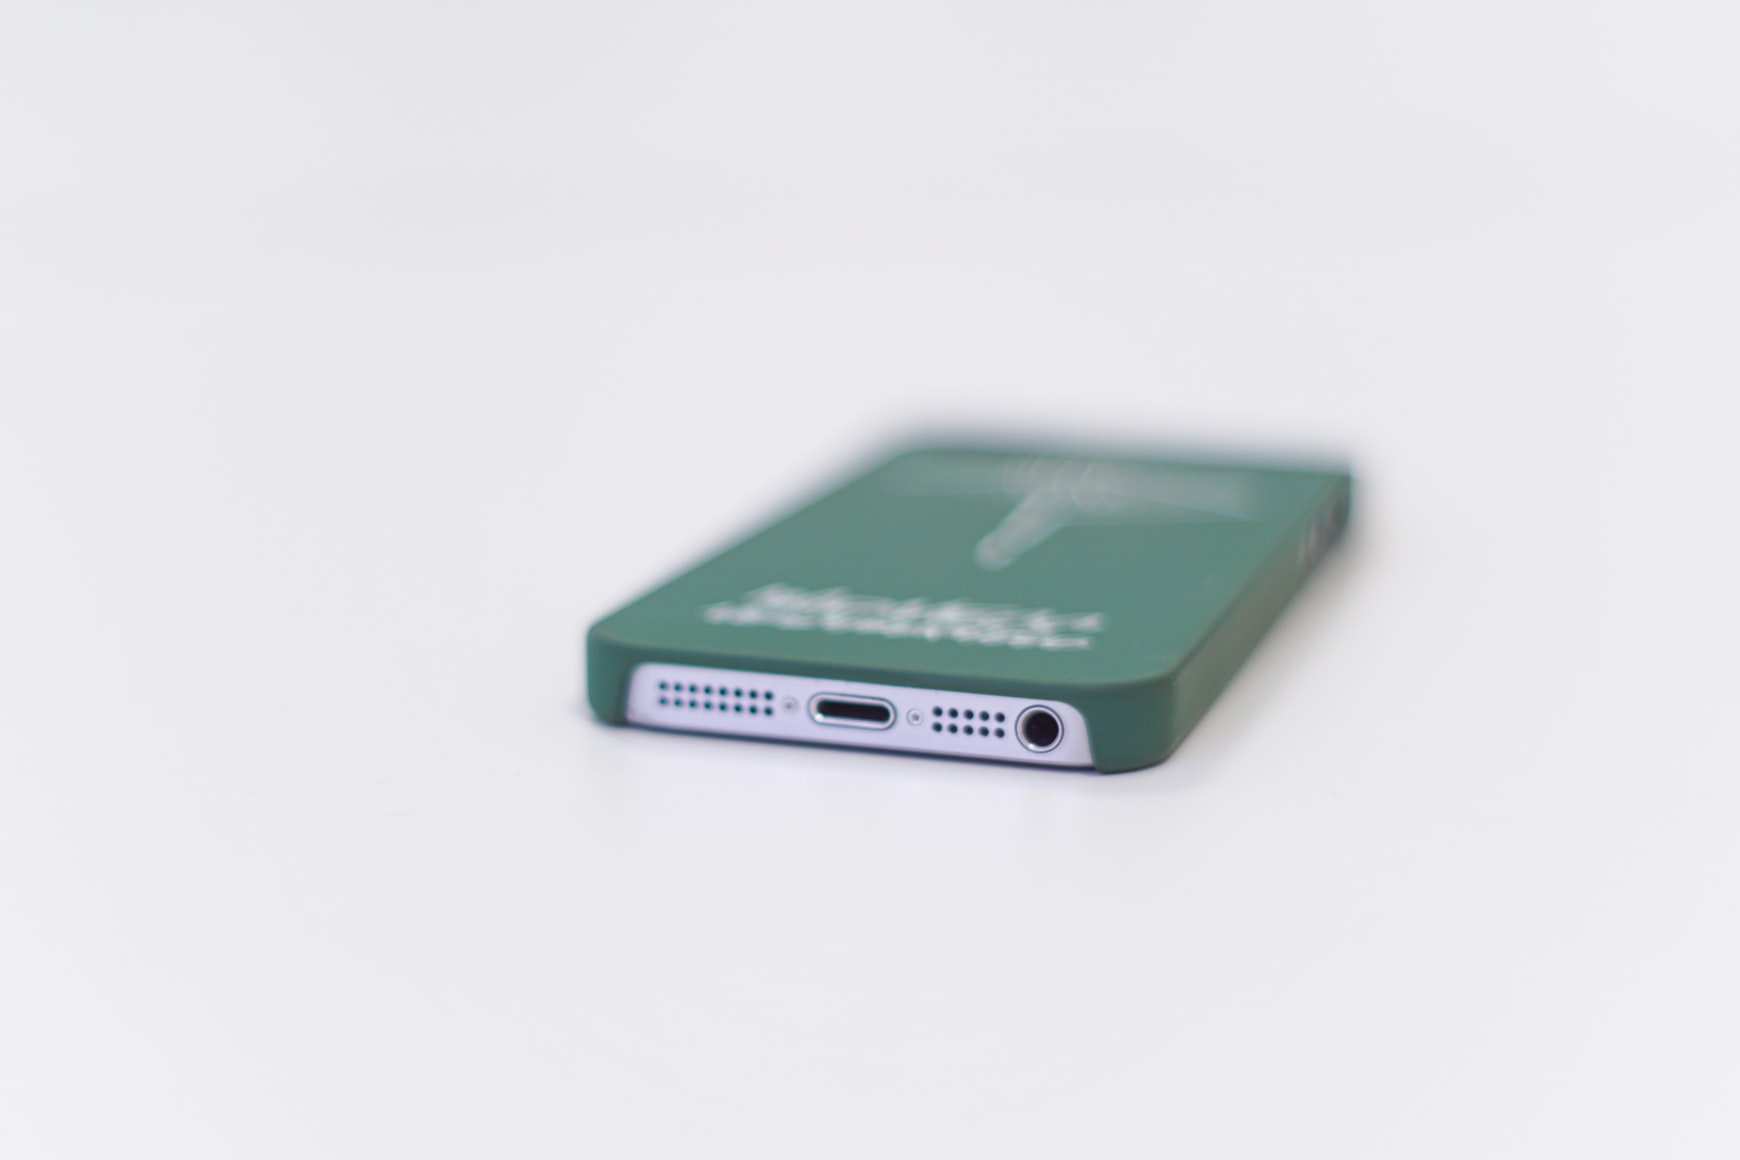 The charging port of an iPhone